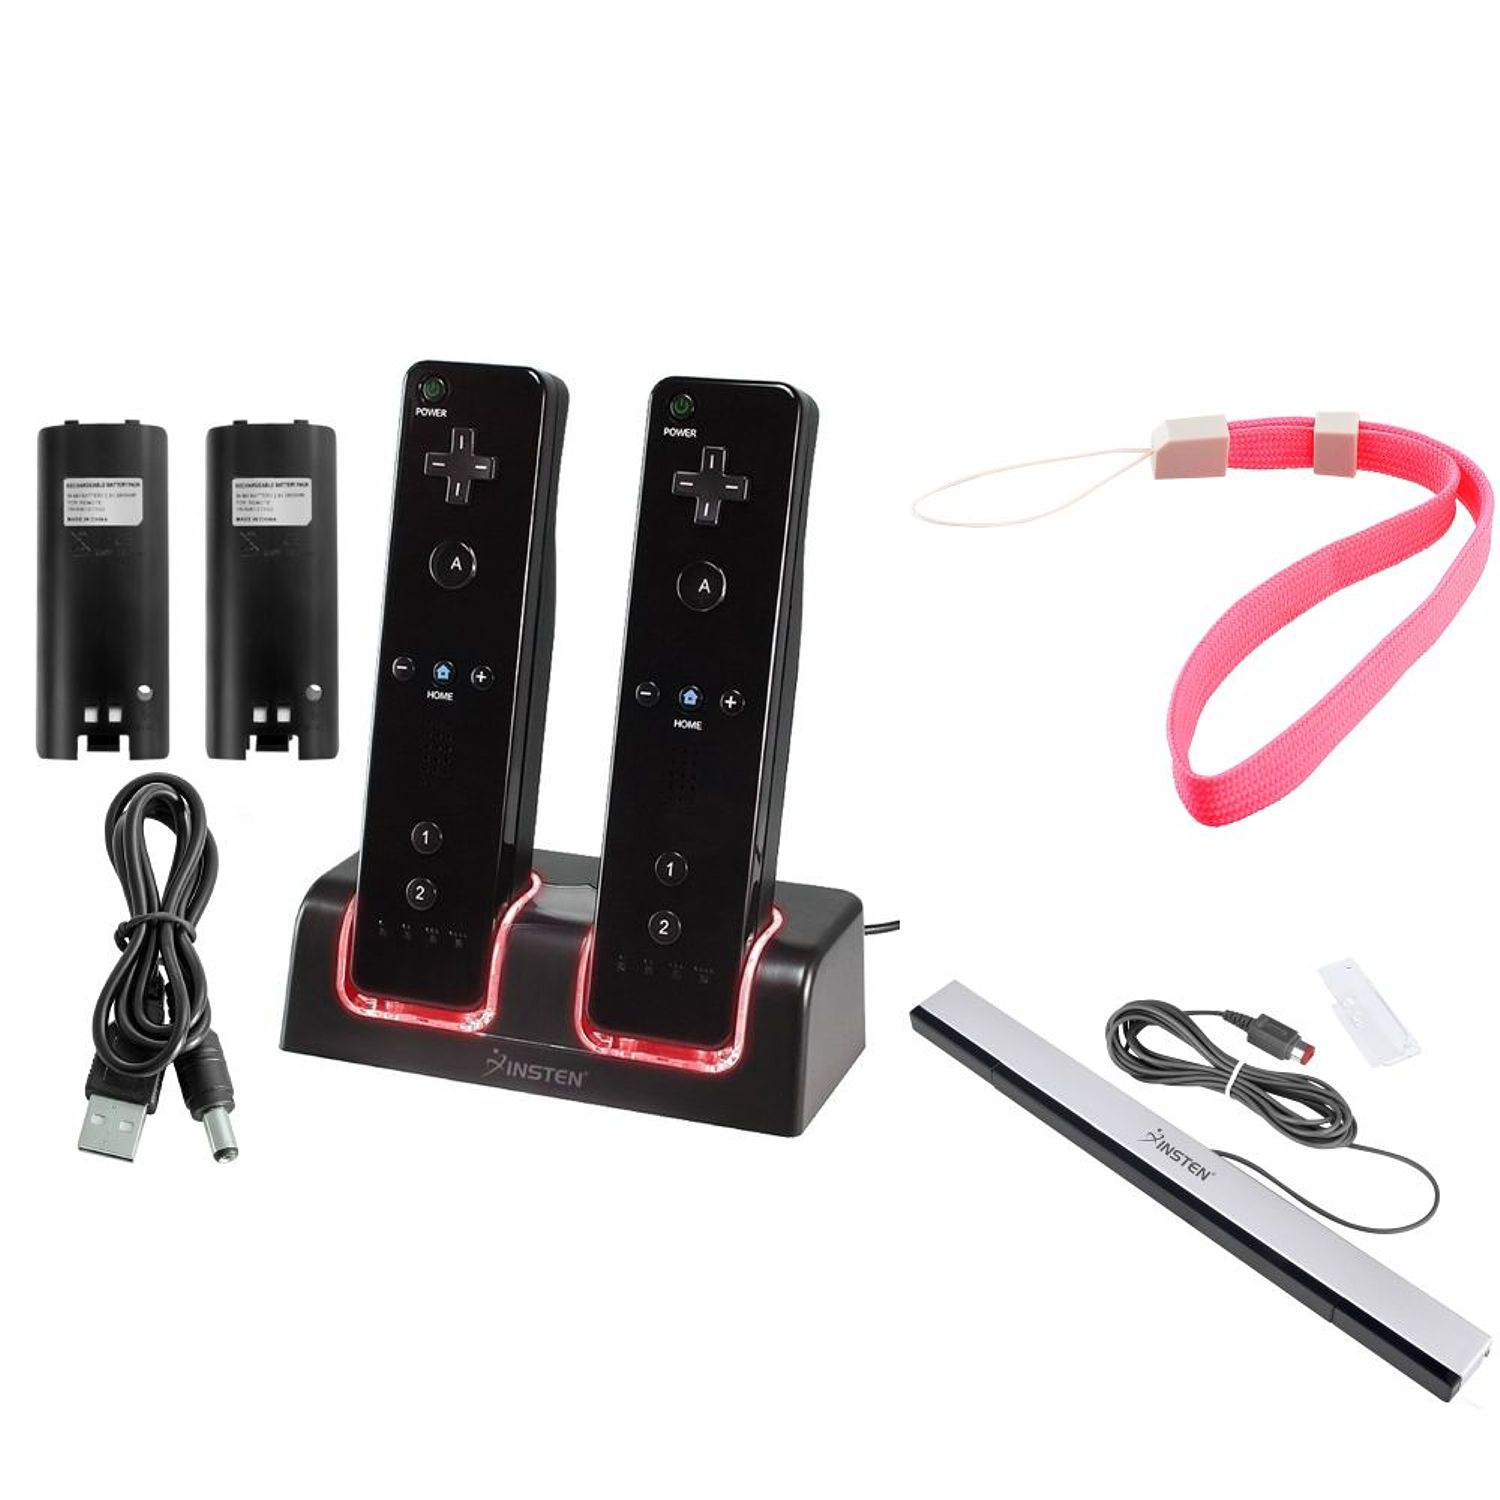 Insten Dual Remote Controller Charger Station Docking with 2-pack 2800mah Batteries + Wired Sensor Bar For Nintendo Wii / Wii U